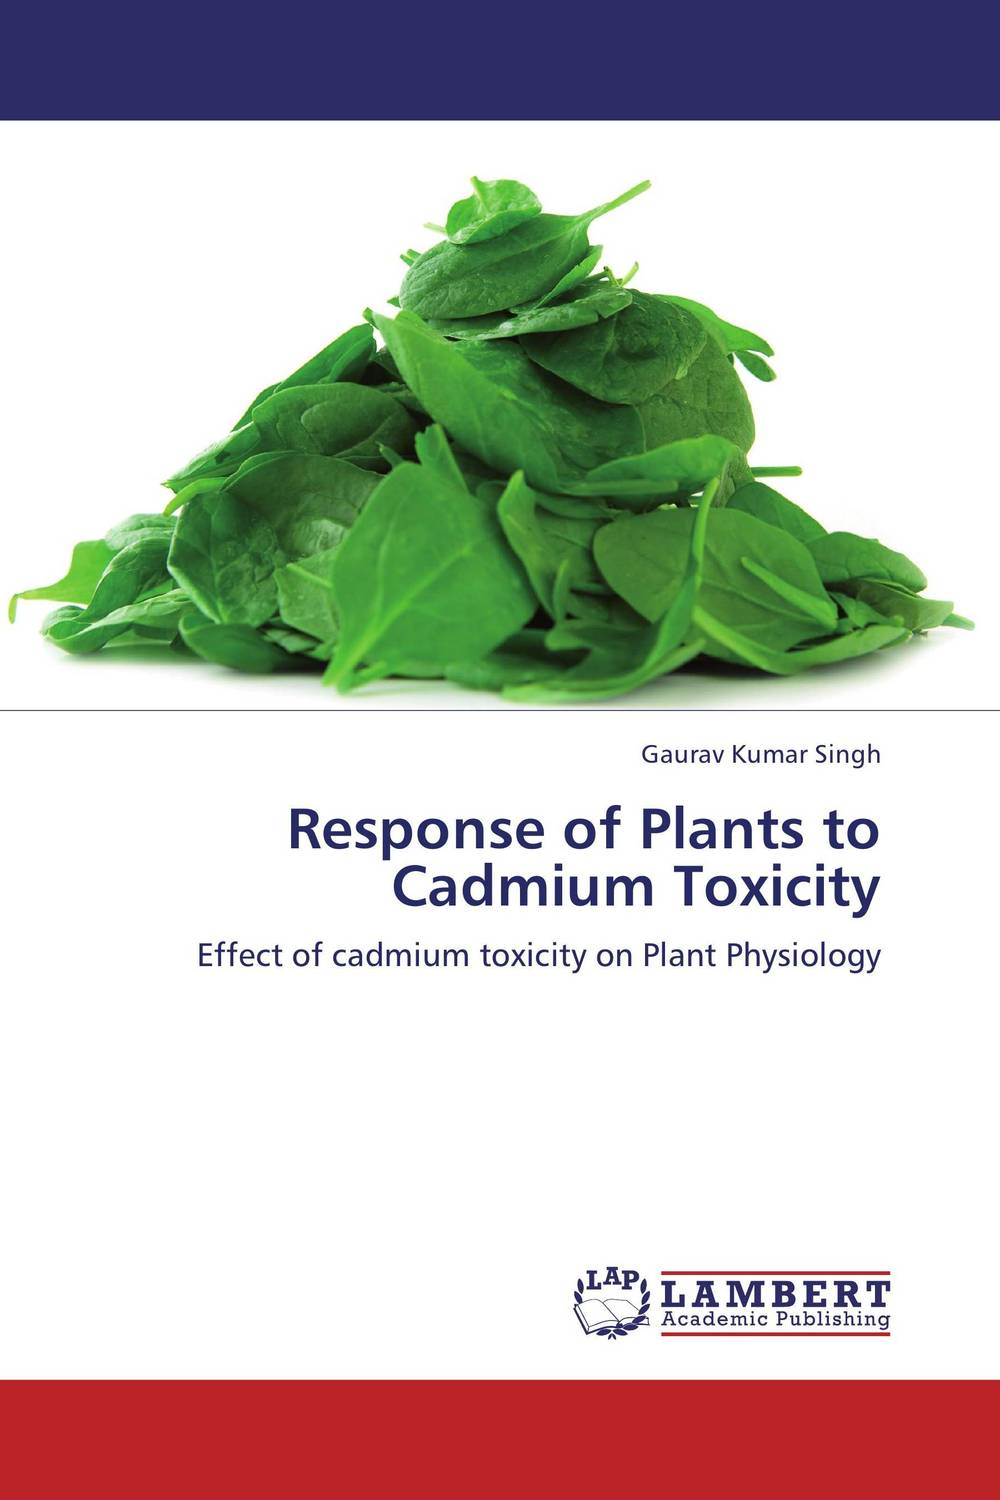 Response of Plants to Cadmium Toxicity cadmium from earth crust to fish tissues